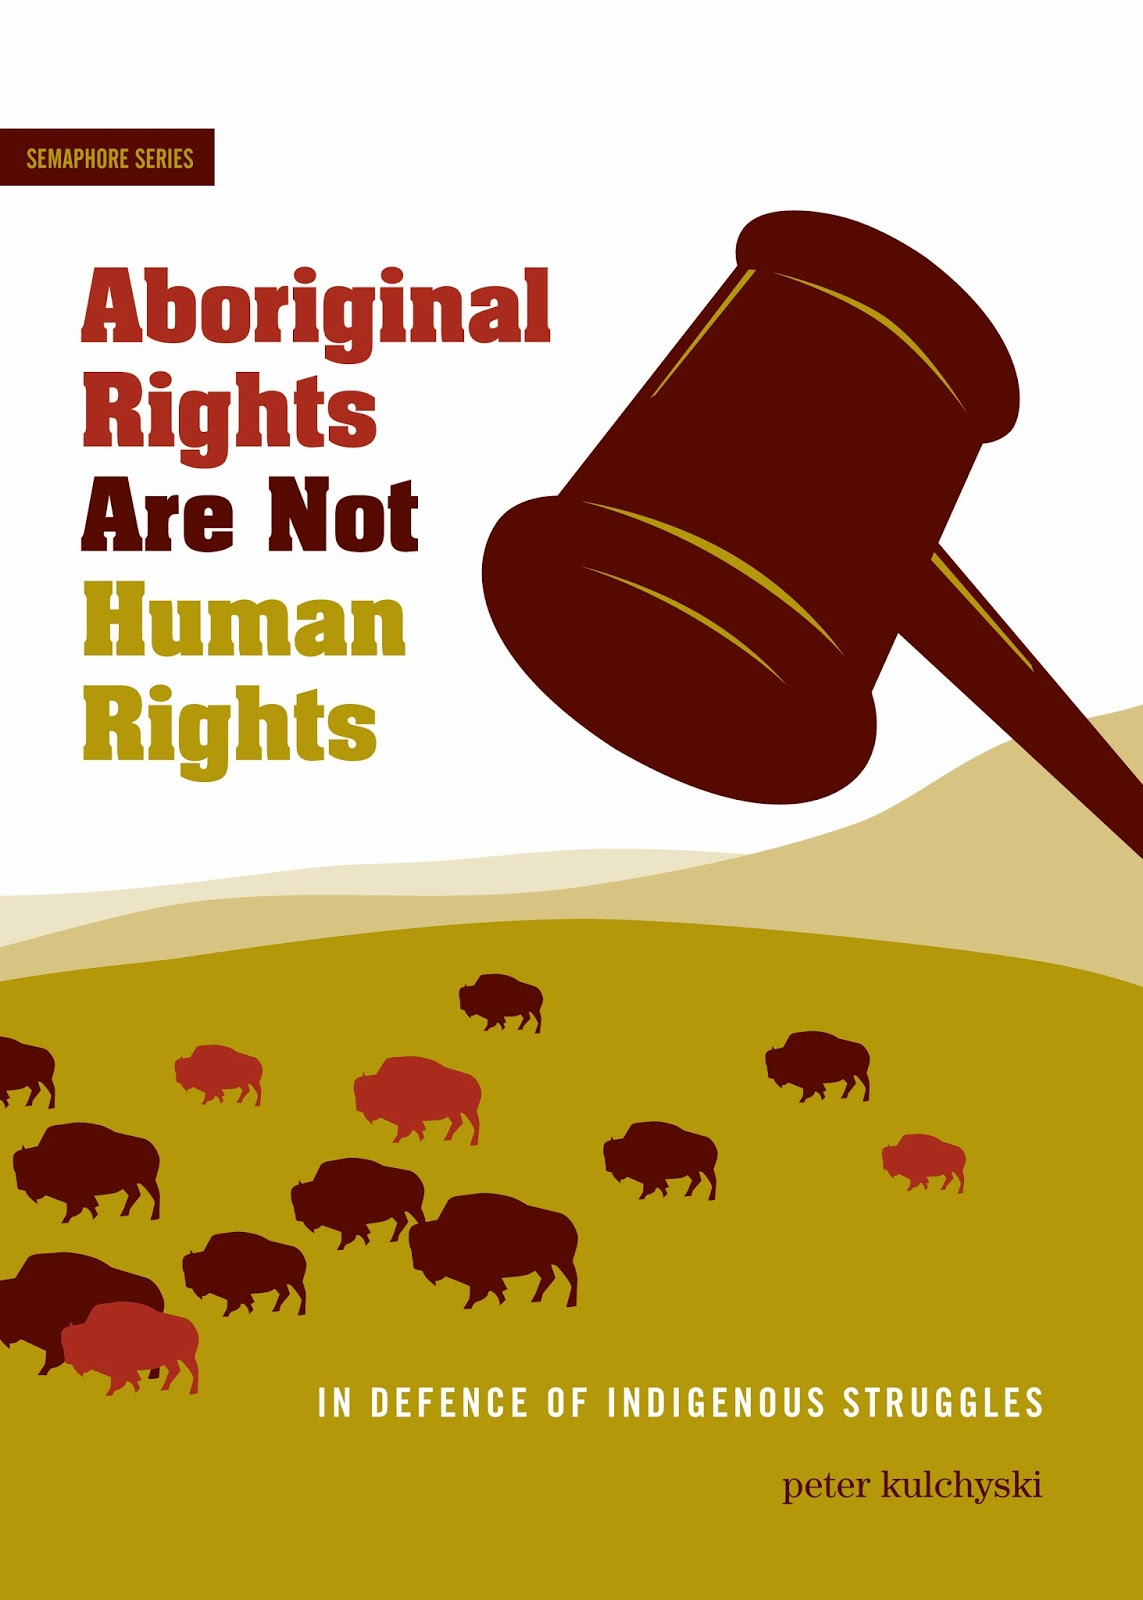 rights rightlessness rhoda hassmann on human rights  aboriginal rights are not human rights wiki commons